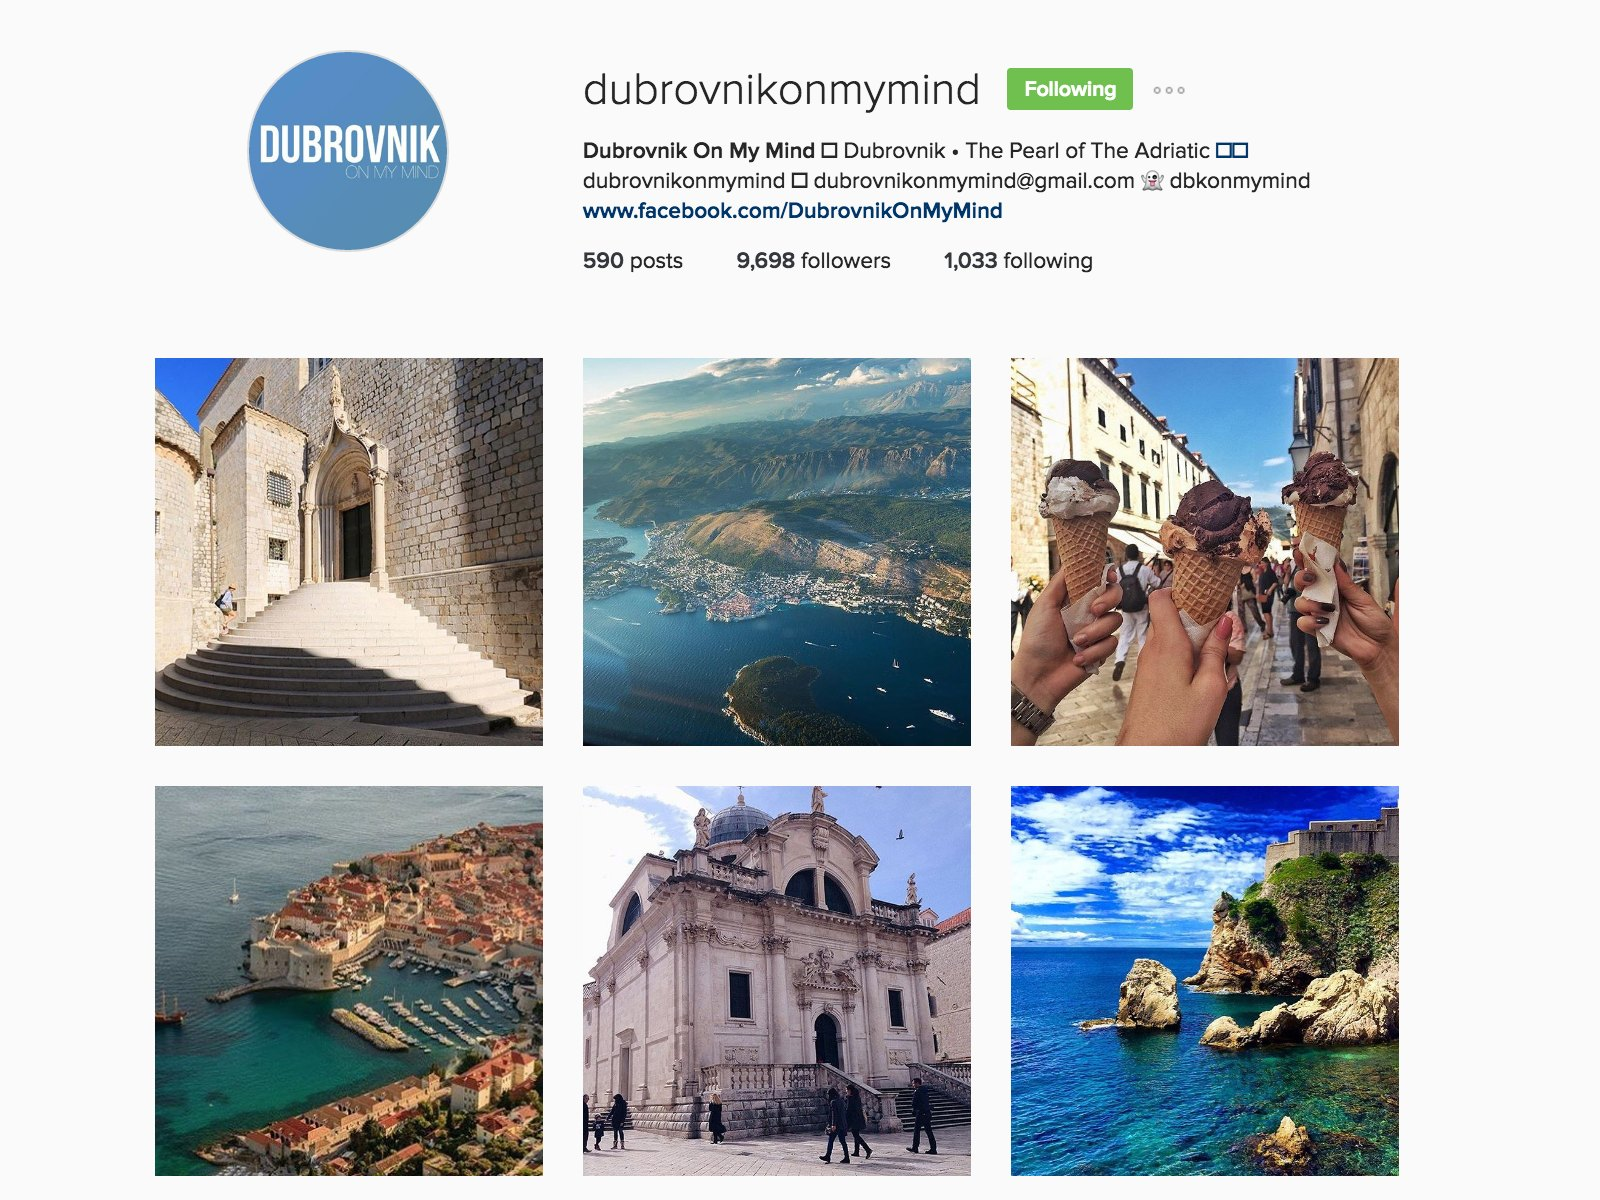 dubrovnik on my mind instagram